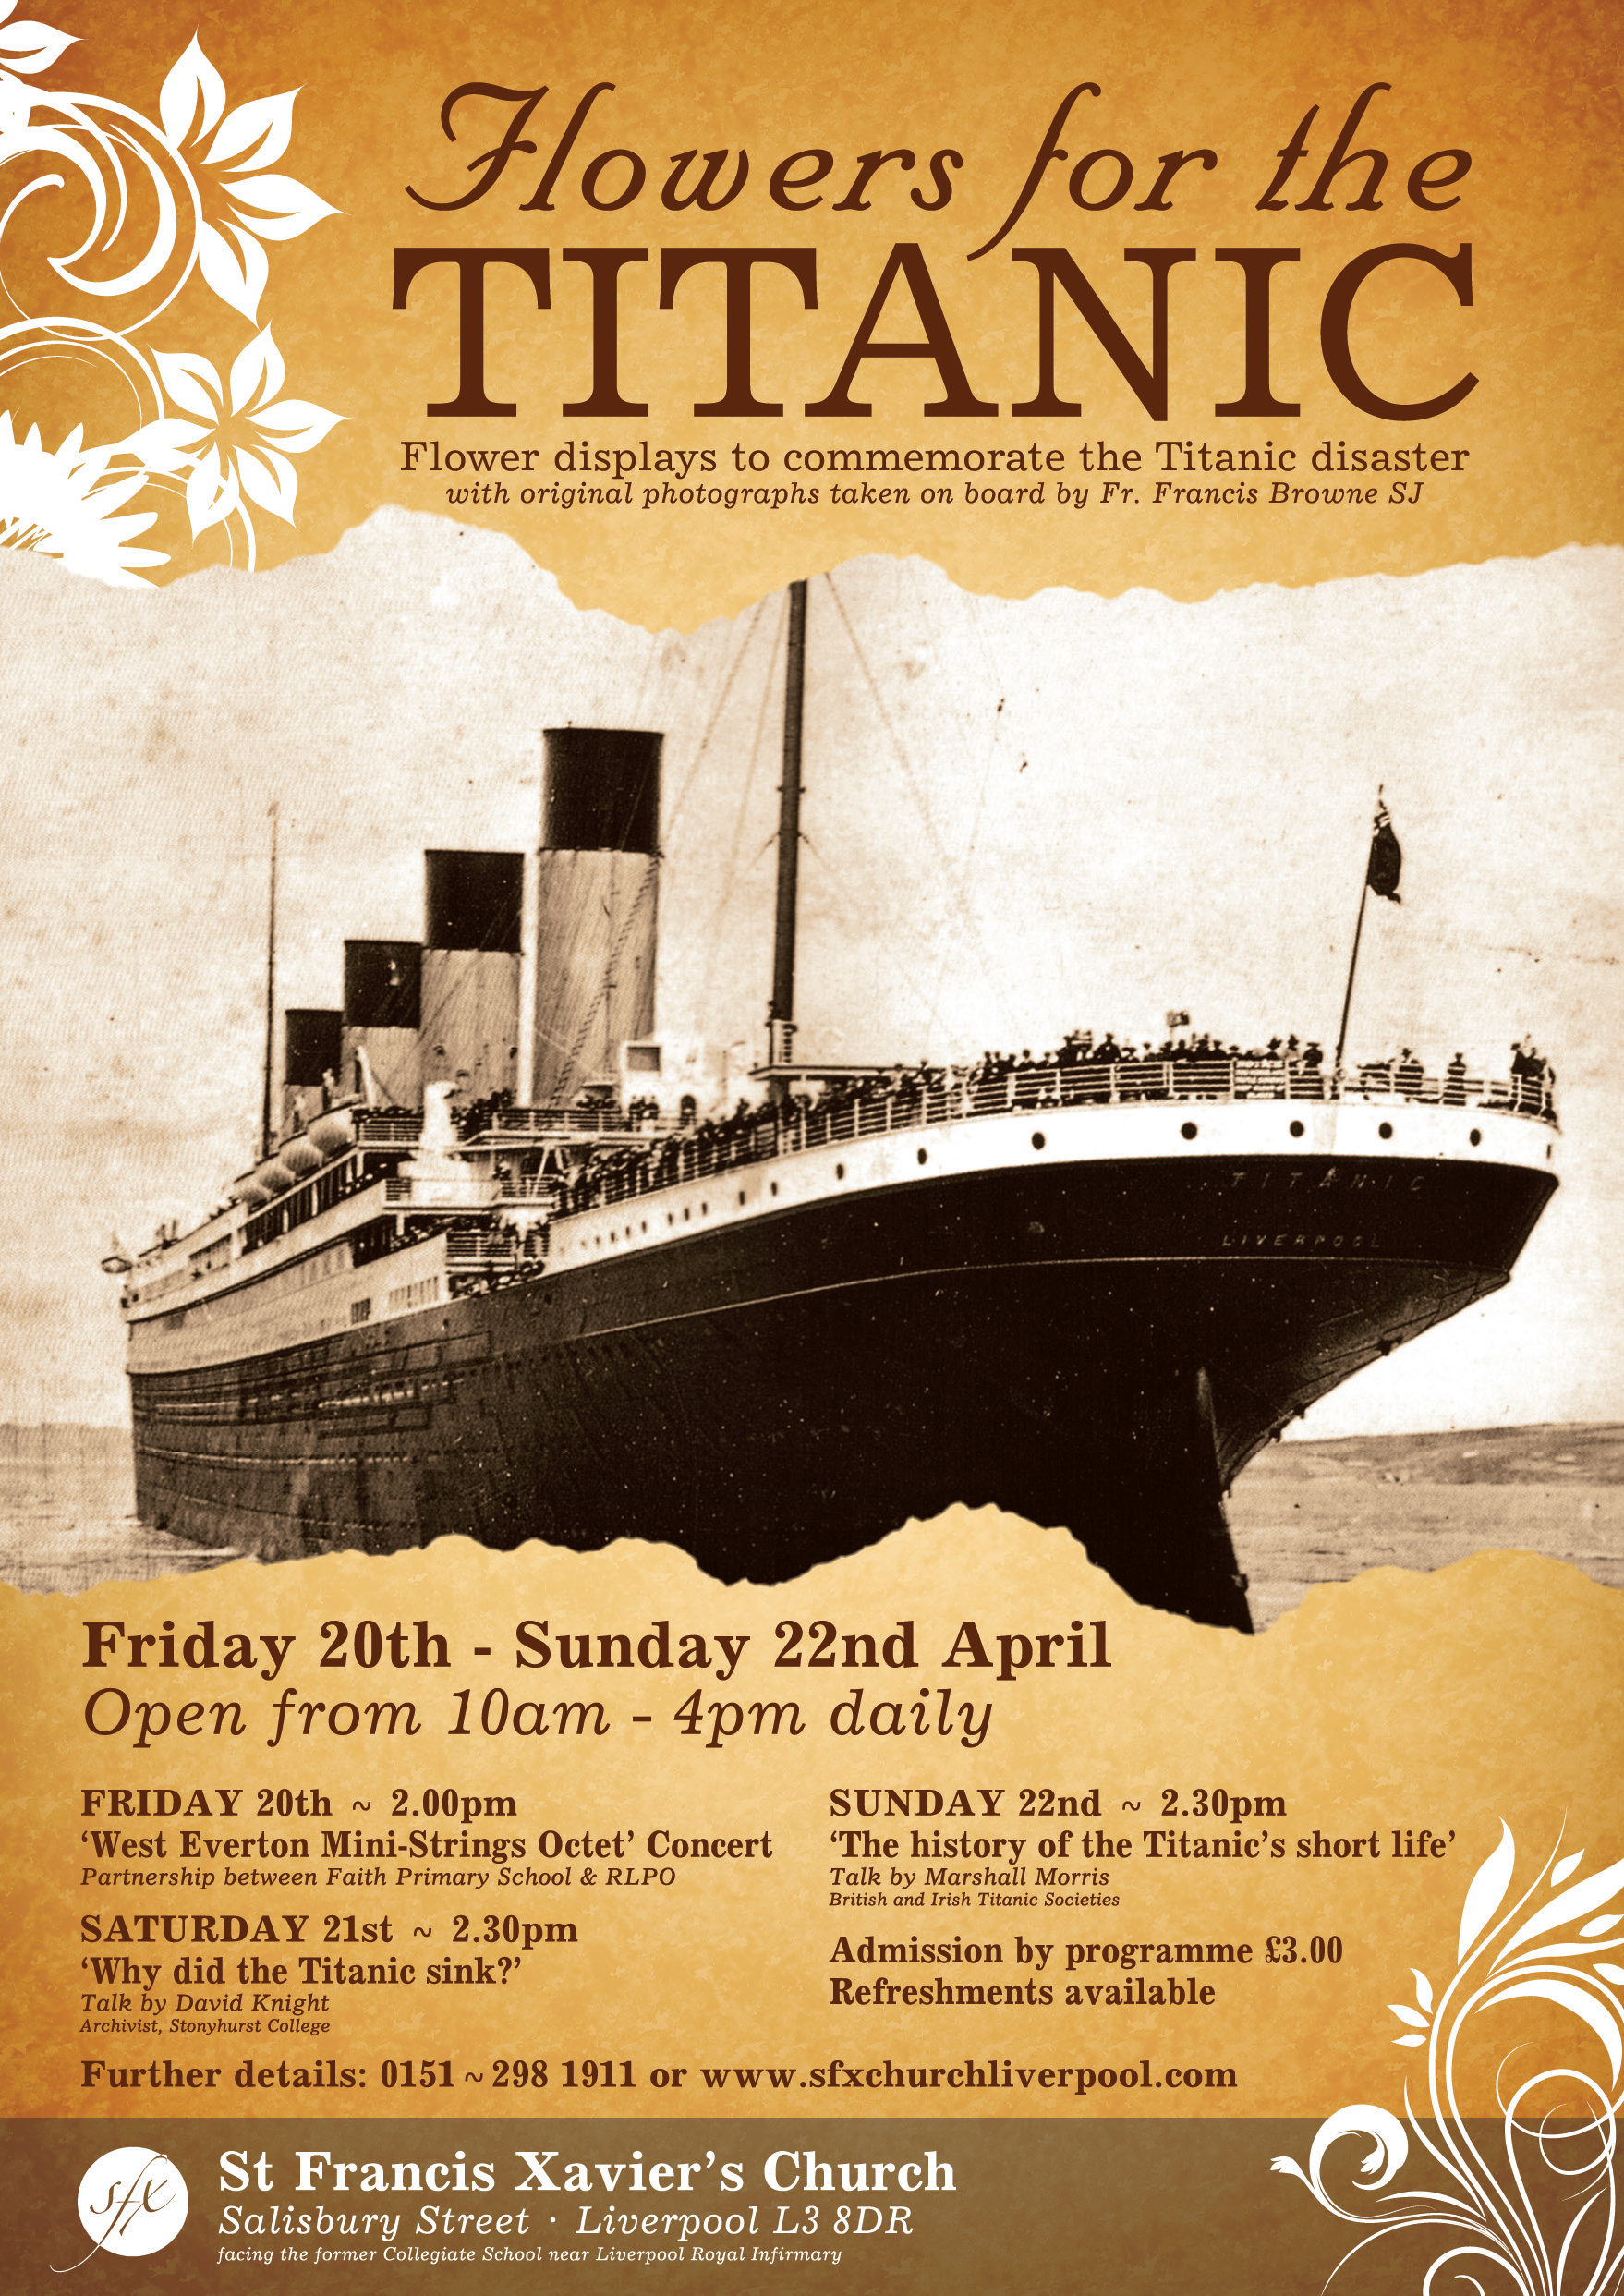 April 15th 1912, the sinking of Titanic - its link to a ...